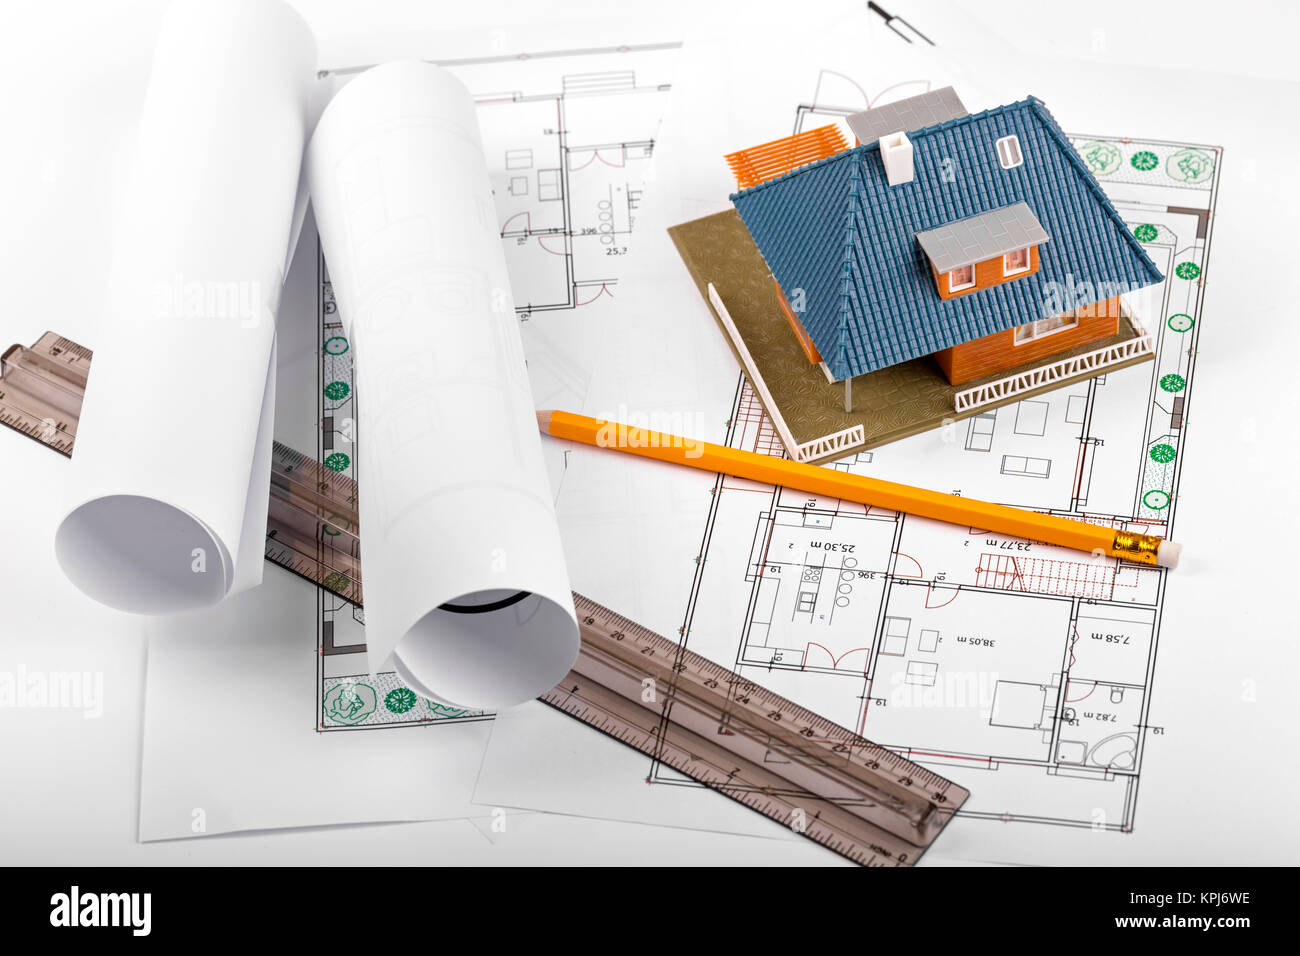 Architect model housing development stock photos architect model housing development new real estate project house on blueprints stock image malvernweather Image collections